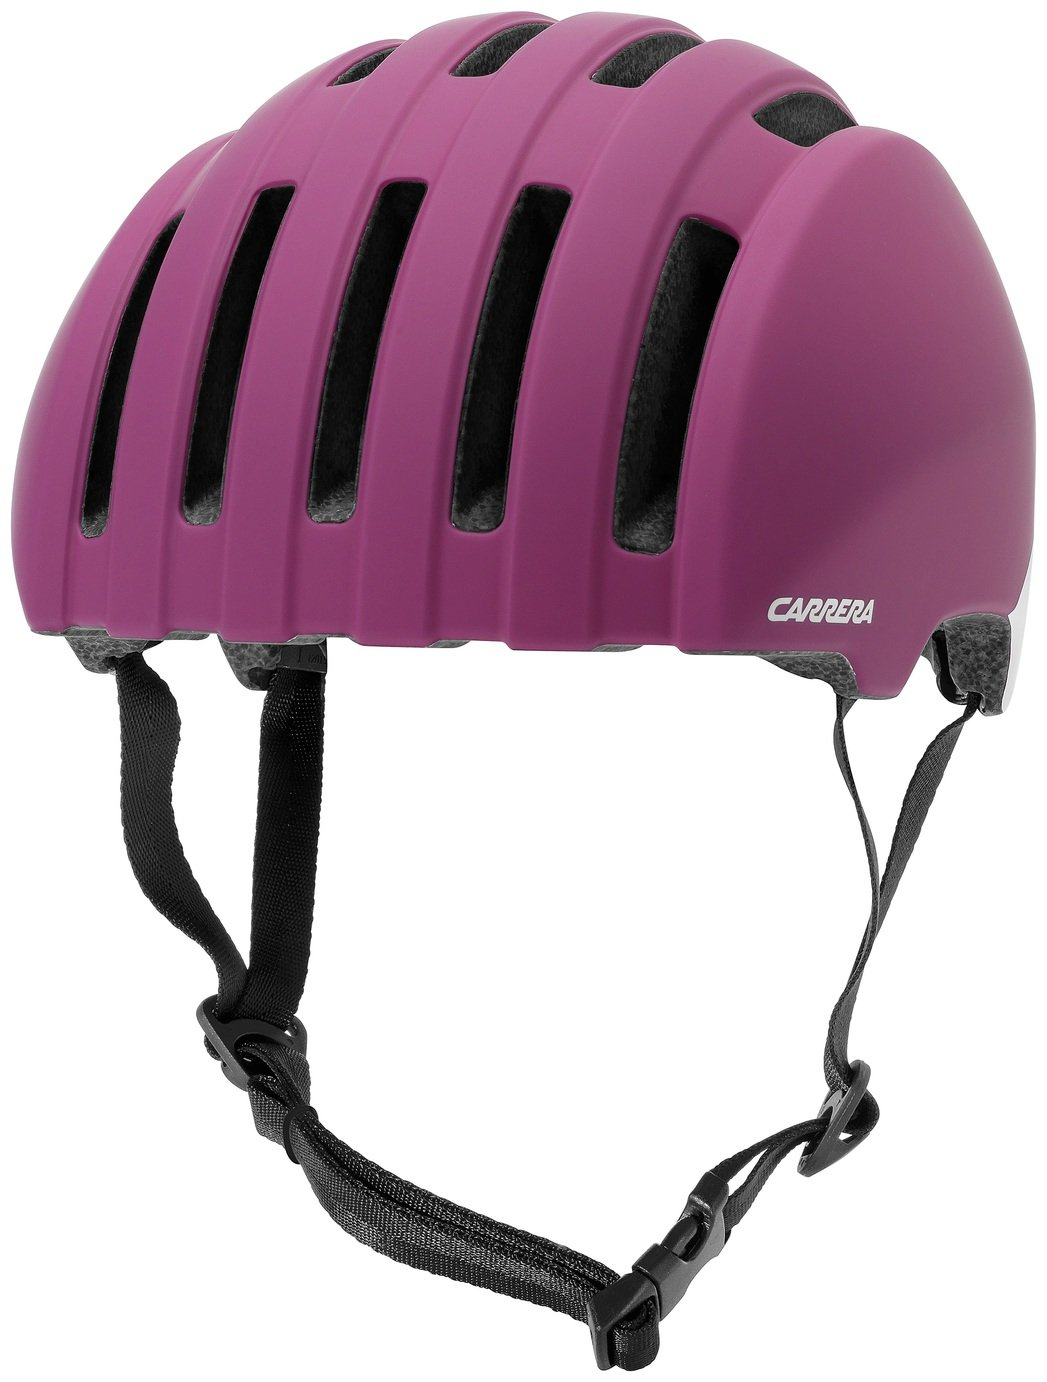 Image of Carrera Precinct Helmet - Fuchsia and Ivory